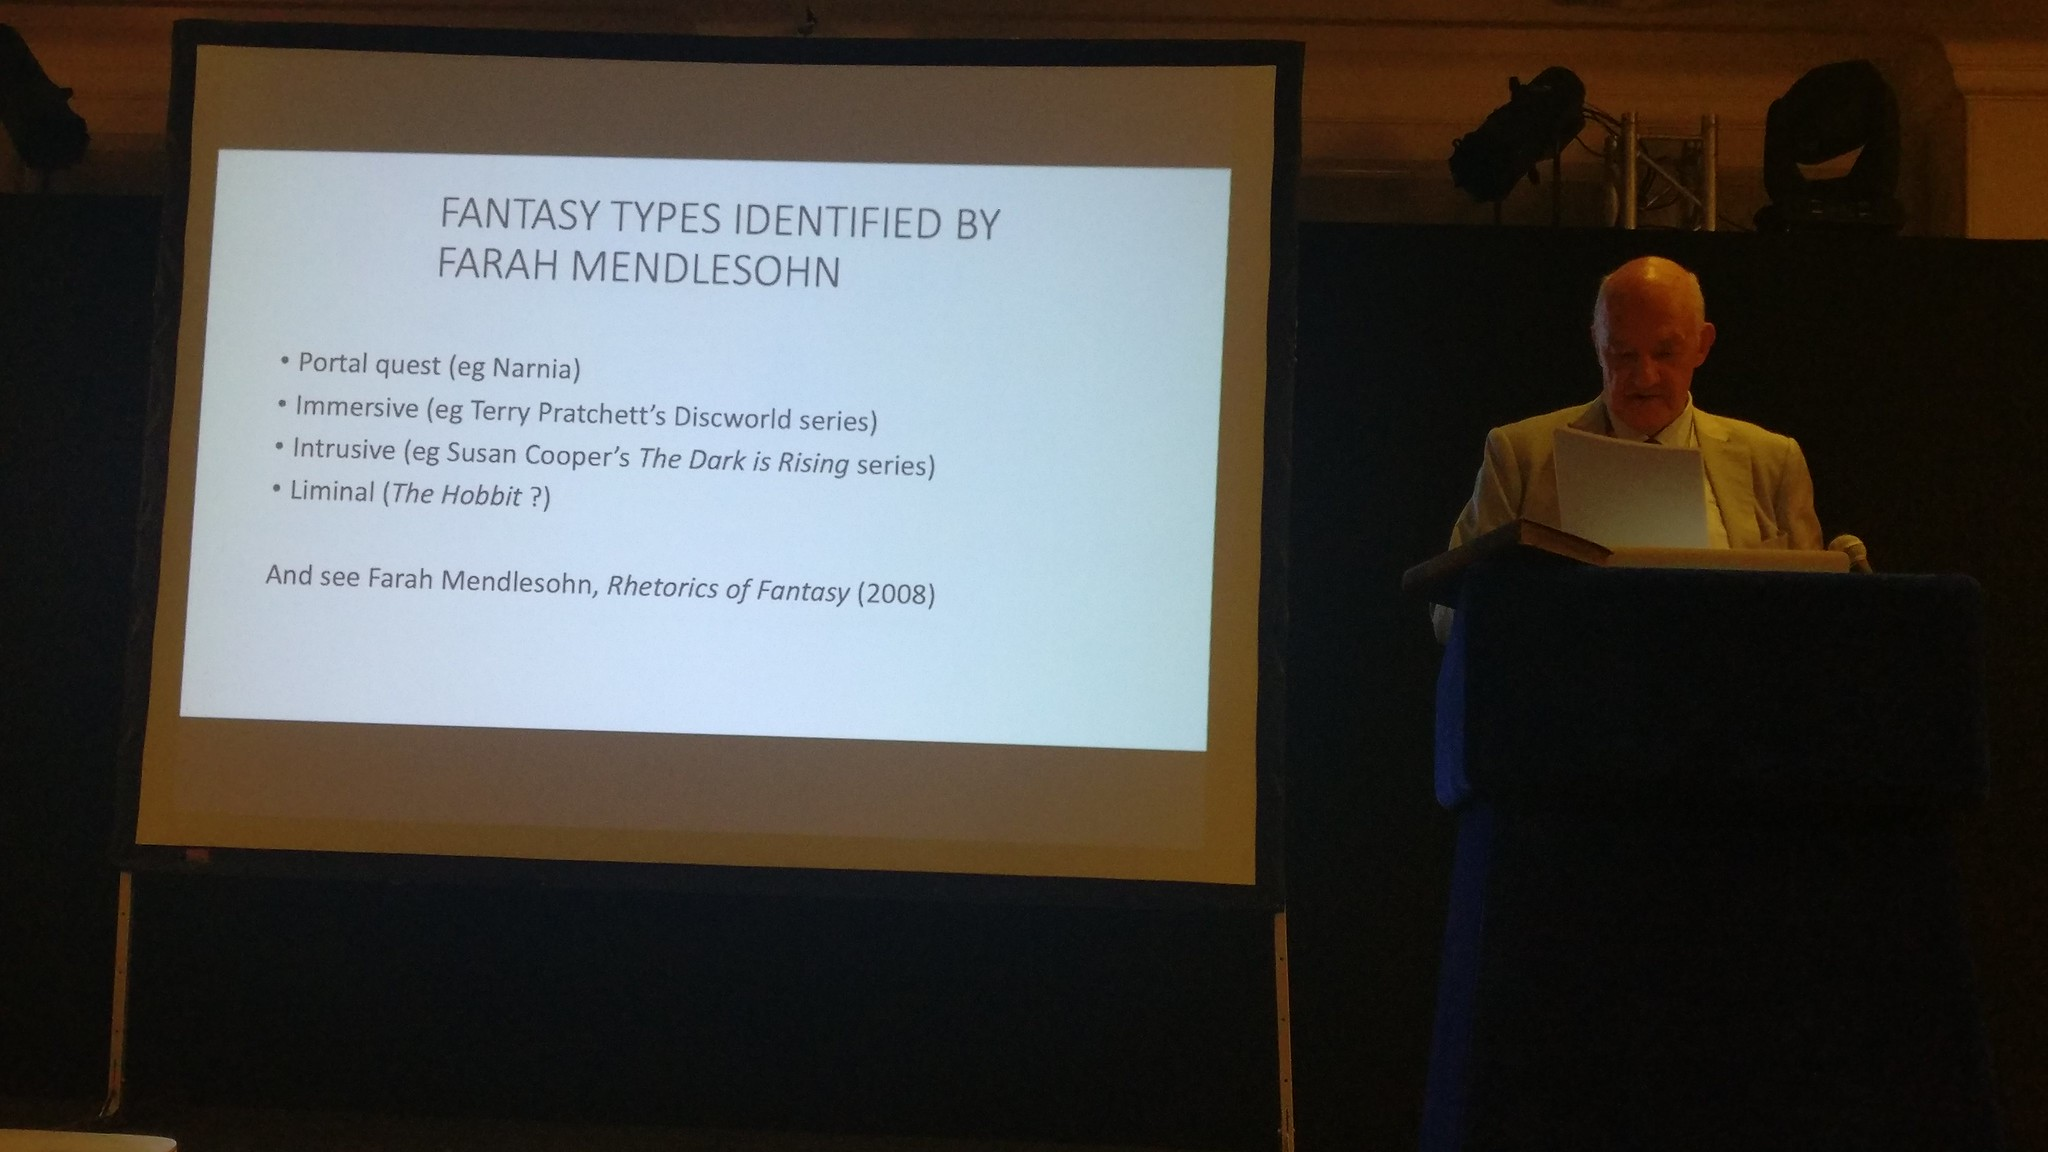 Tom Shippey explaining the fantasy types identified by Farah Mendelsohn